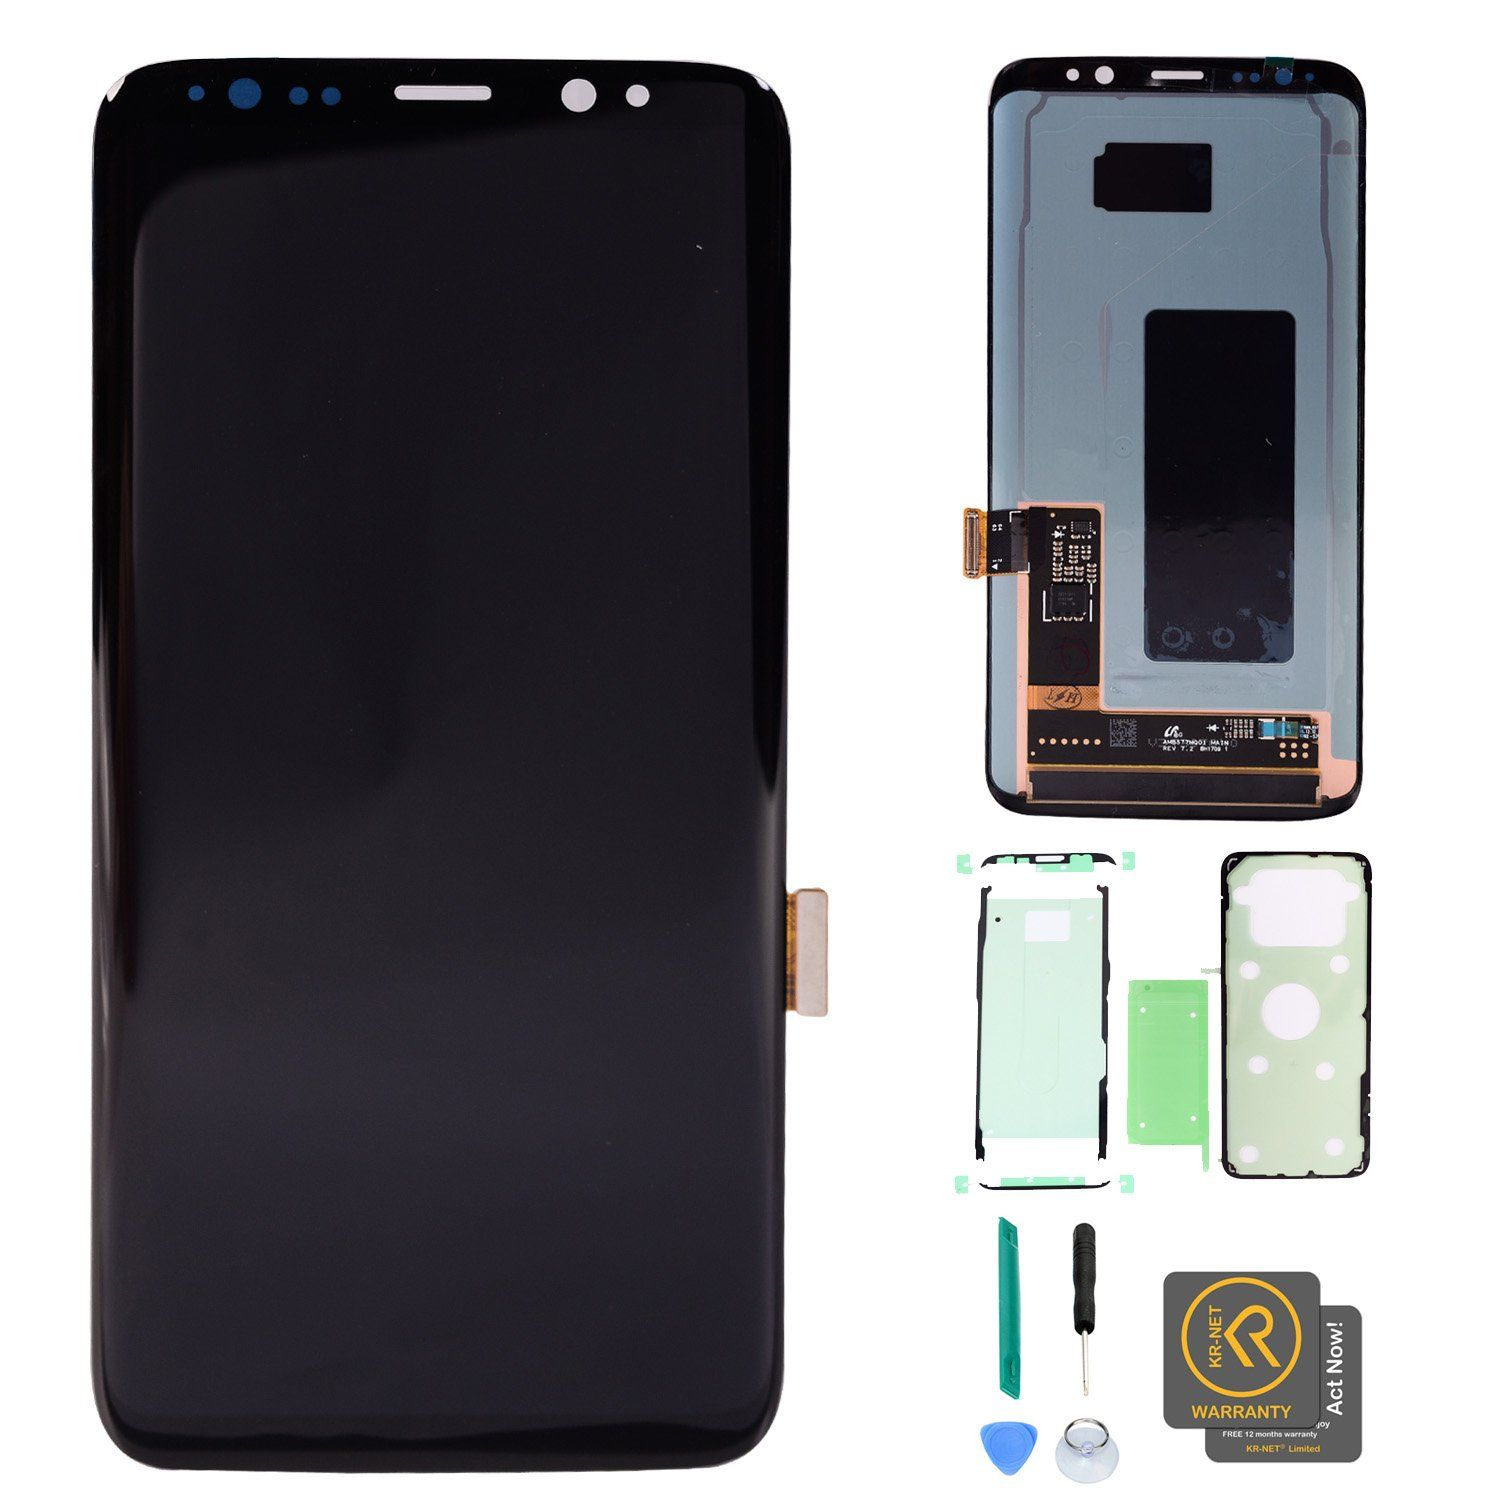 Kr Net Amoled Lcd Display Touch Screen Digitizer Assembly Samsung Galaxy Grand Neo Plus Oem Replacement Full Set Precut Adhesive For S8 G950f G950a G950p G950v G950t G950r4